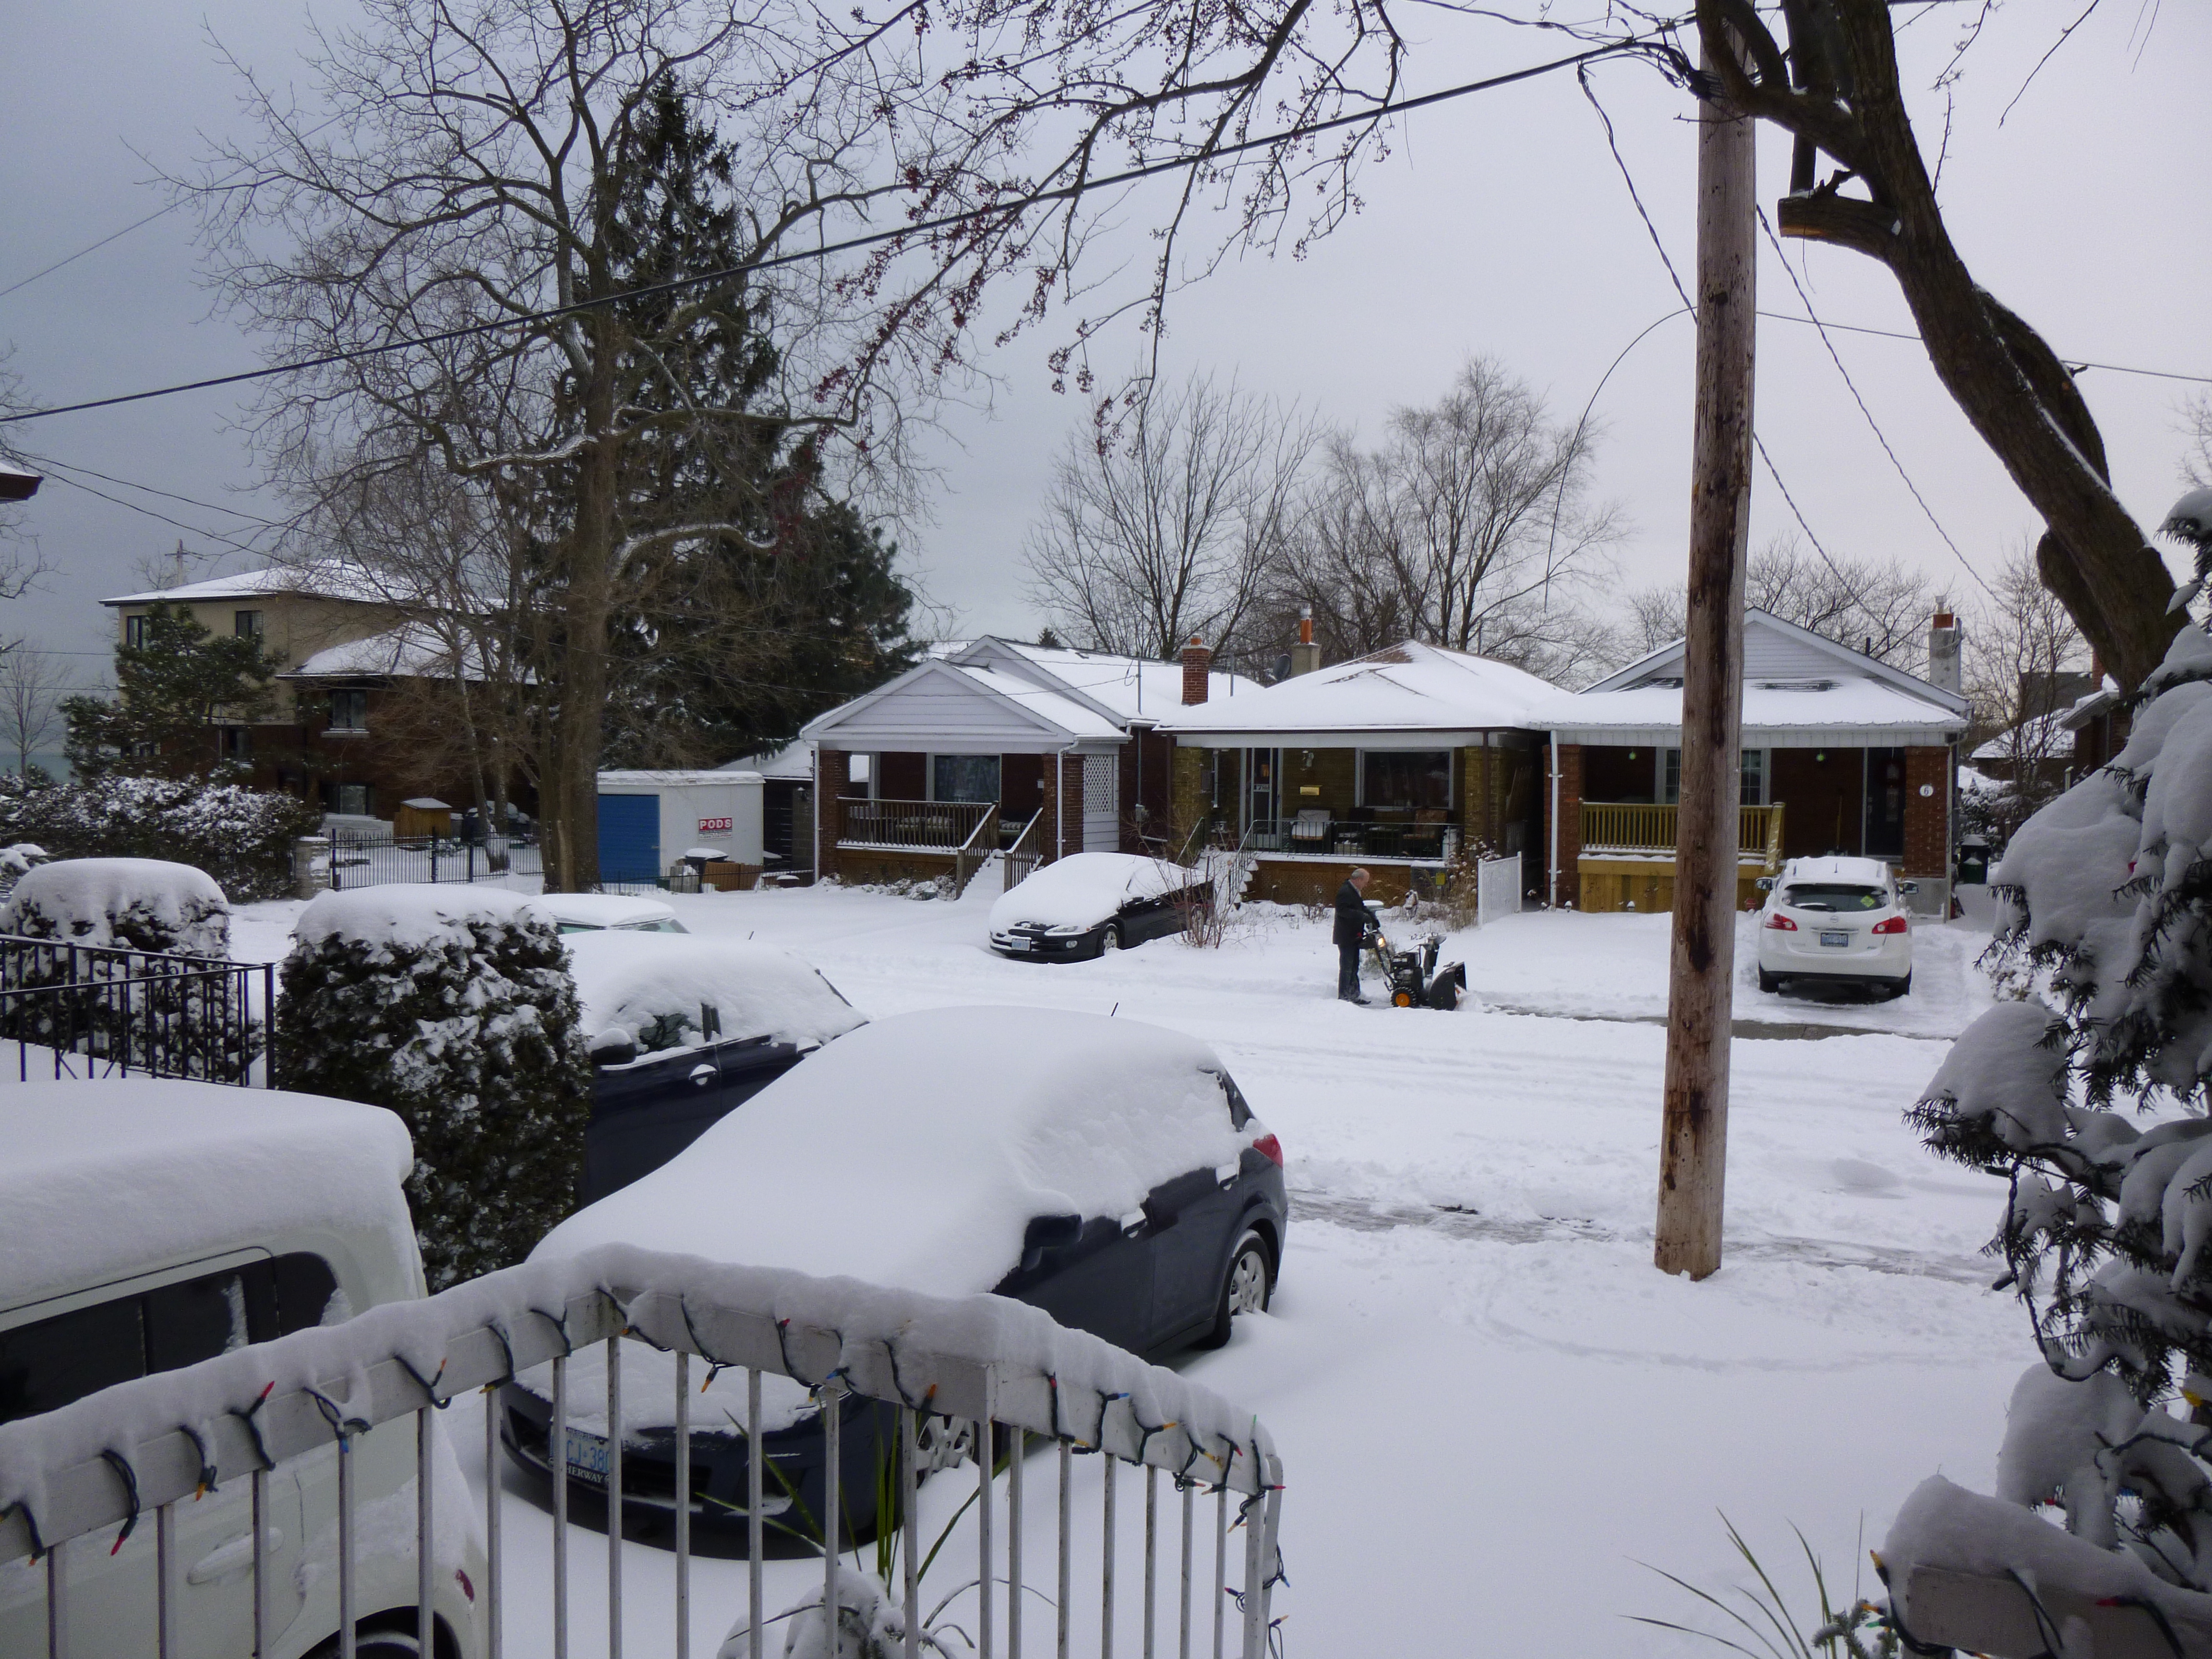 The view from our front door after our first big snowfall this winter.